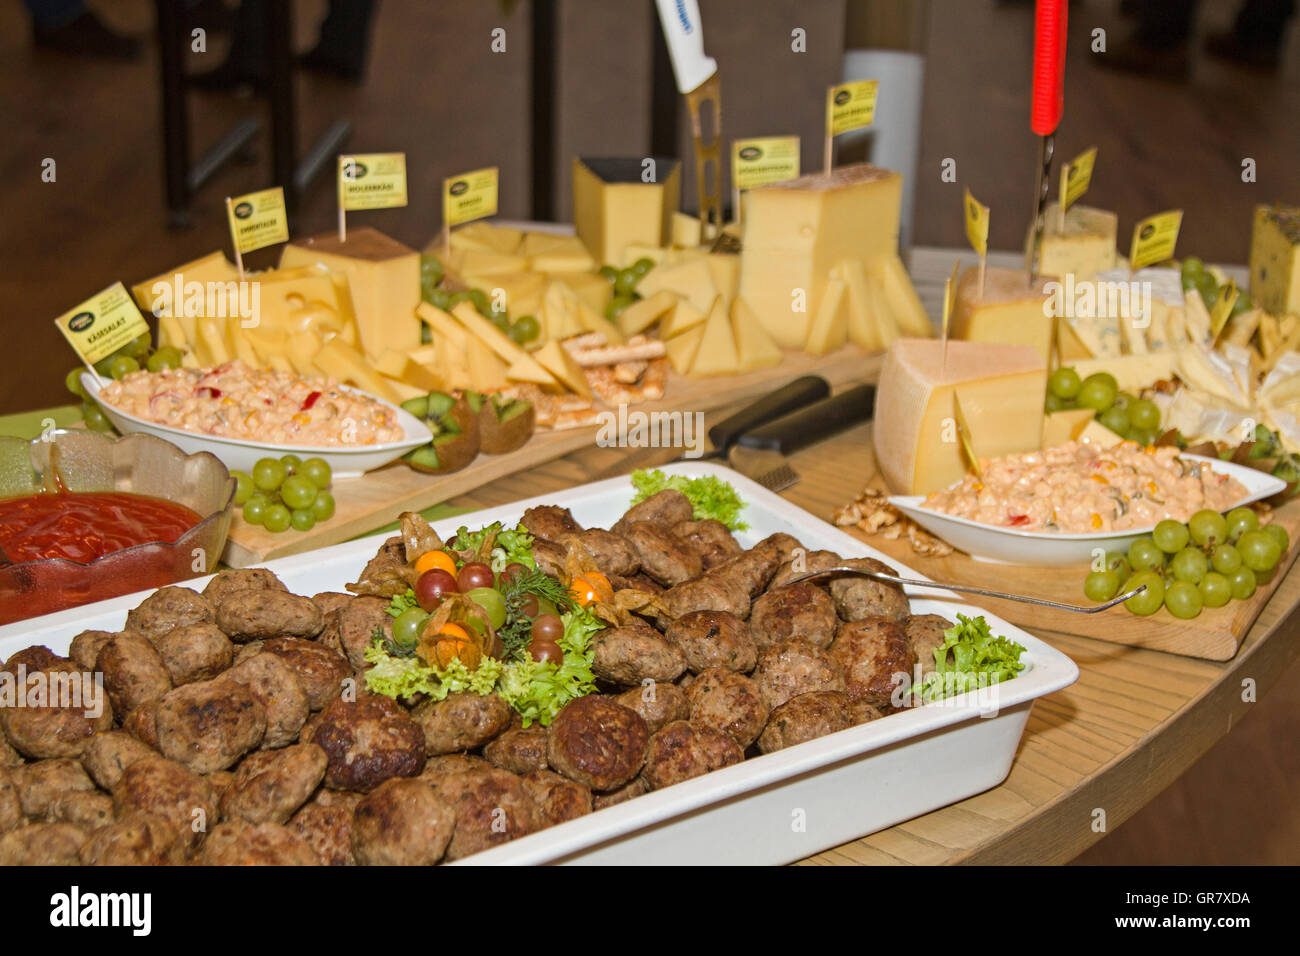 Buffet Table Loaded With Various Culinary Delights - Stock Image